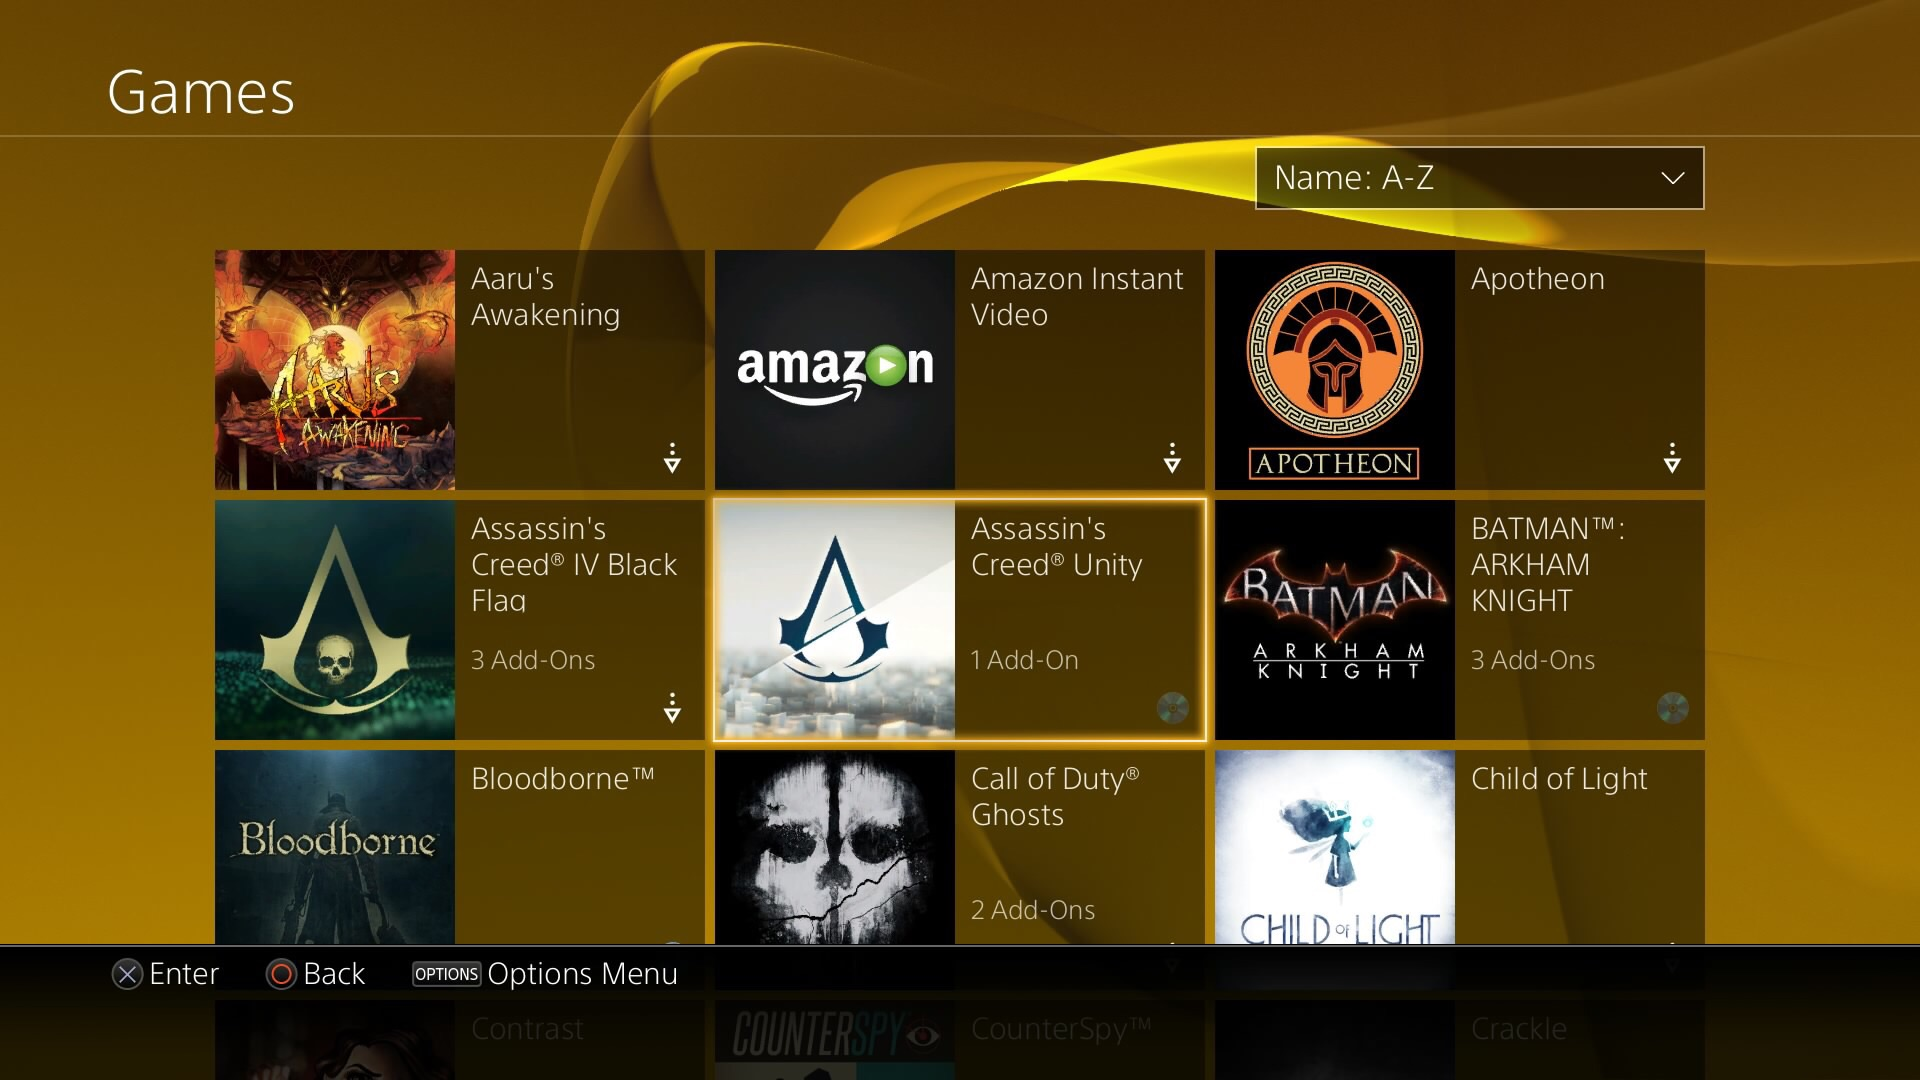 Amazon Instant Video is not a game, PS4.